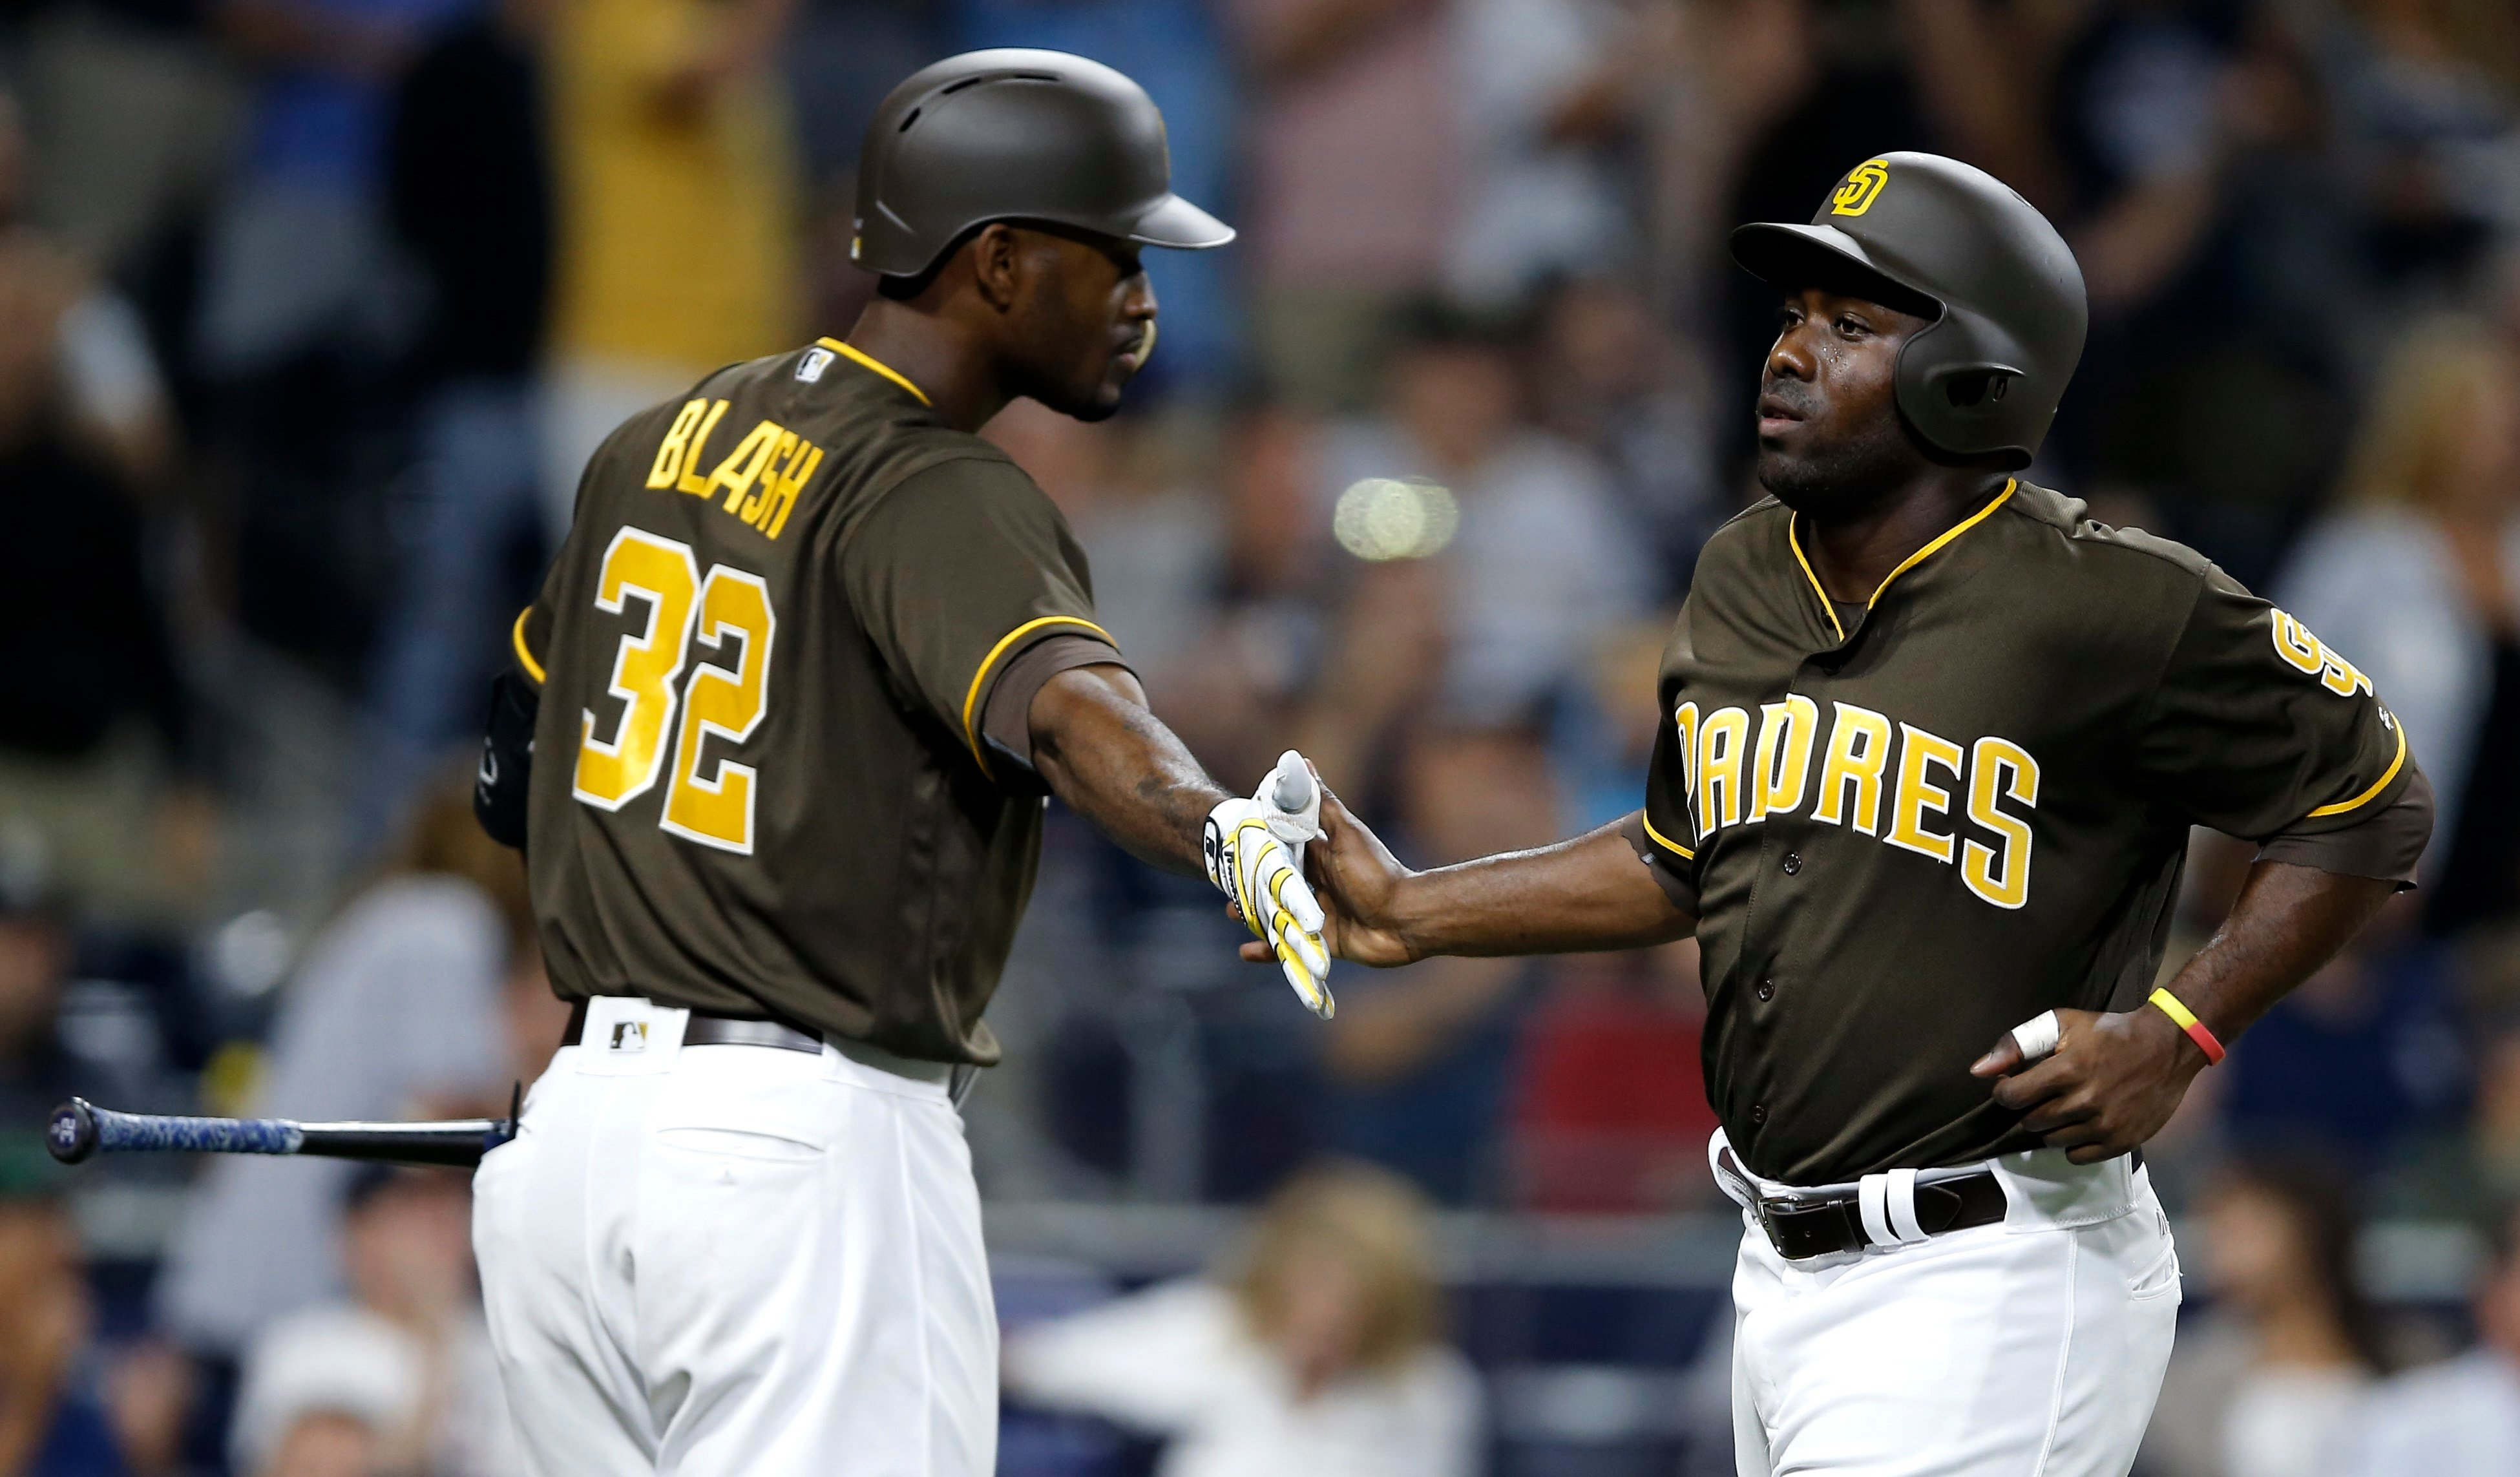 San Diego Padres' Jose Pirela, right, gets congratulations from Jabari Blash after scoring on a triple by Cory Spangenberg during the sixth inning of a baseball game against the Pittsburgh Pirates in San Diego, Friday, July 28, 2017. (AP Photo/Alex Gallar